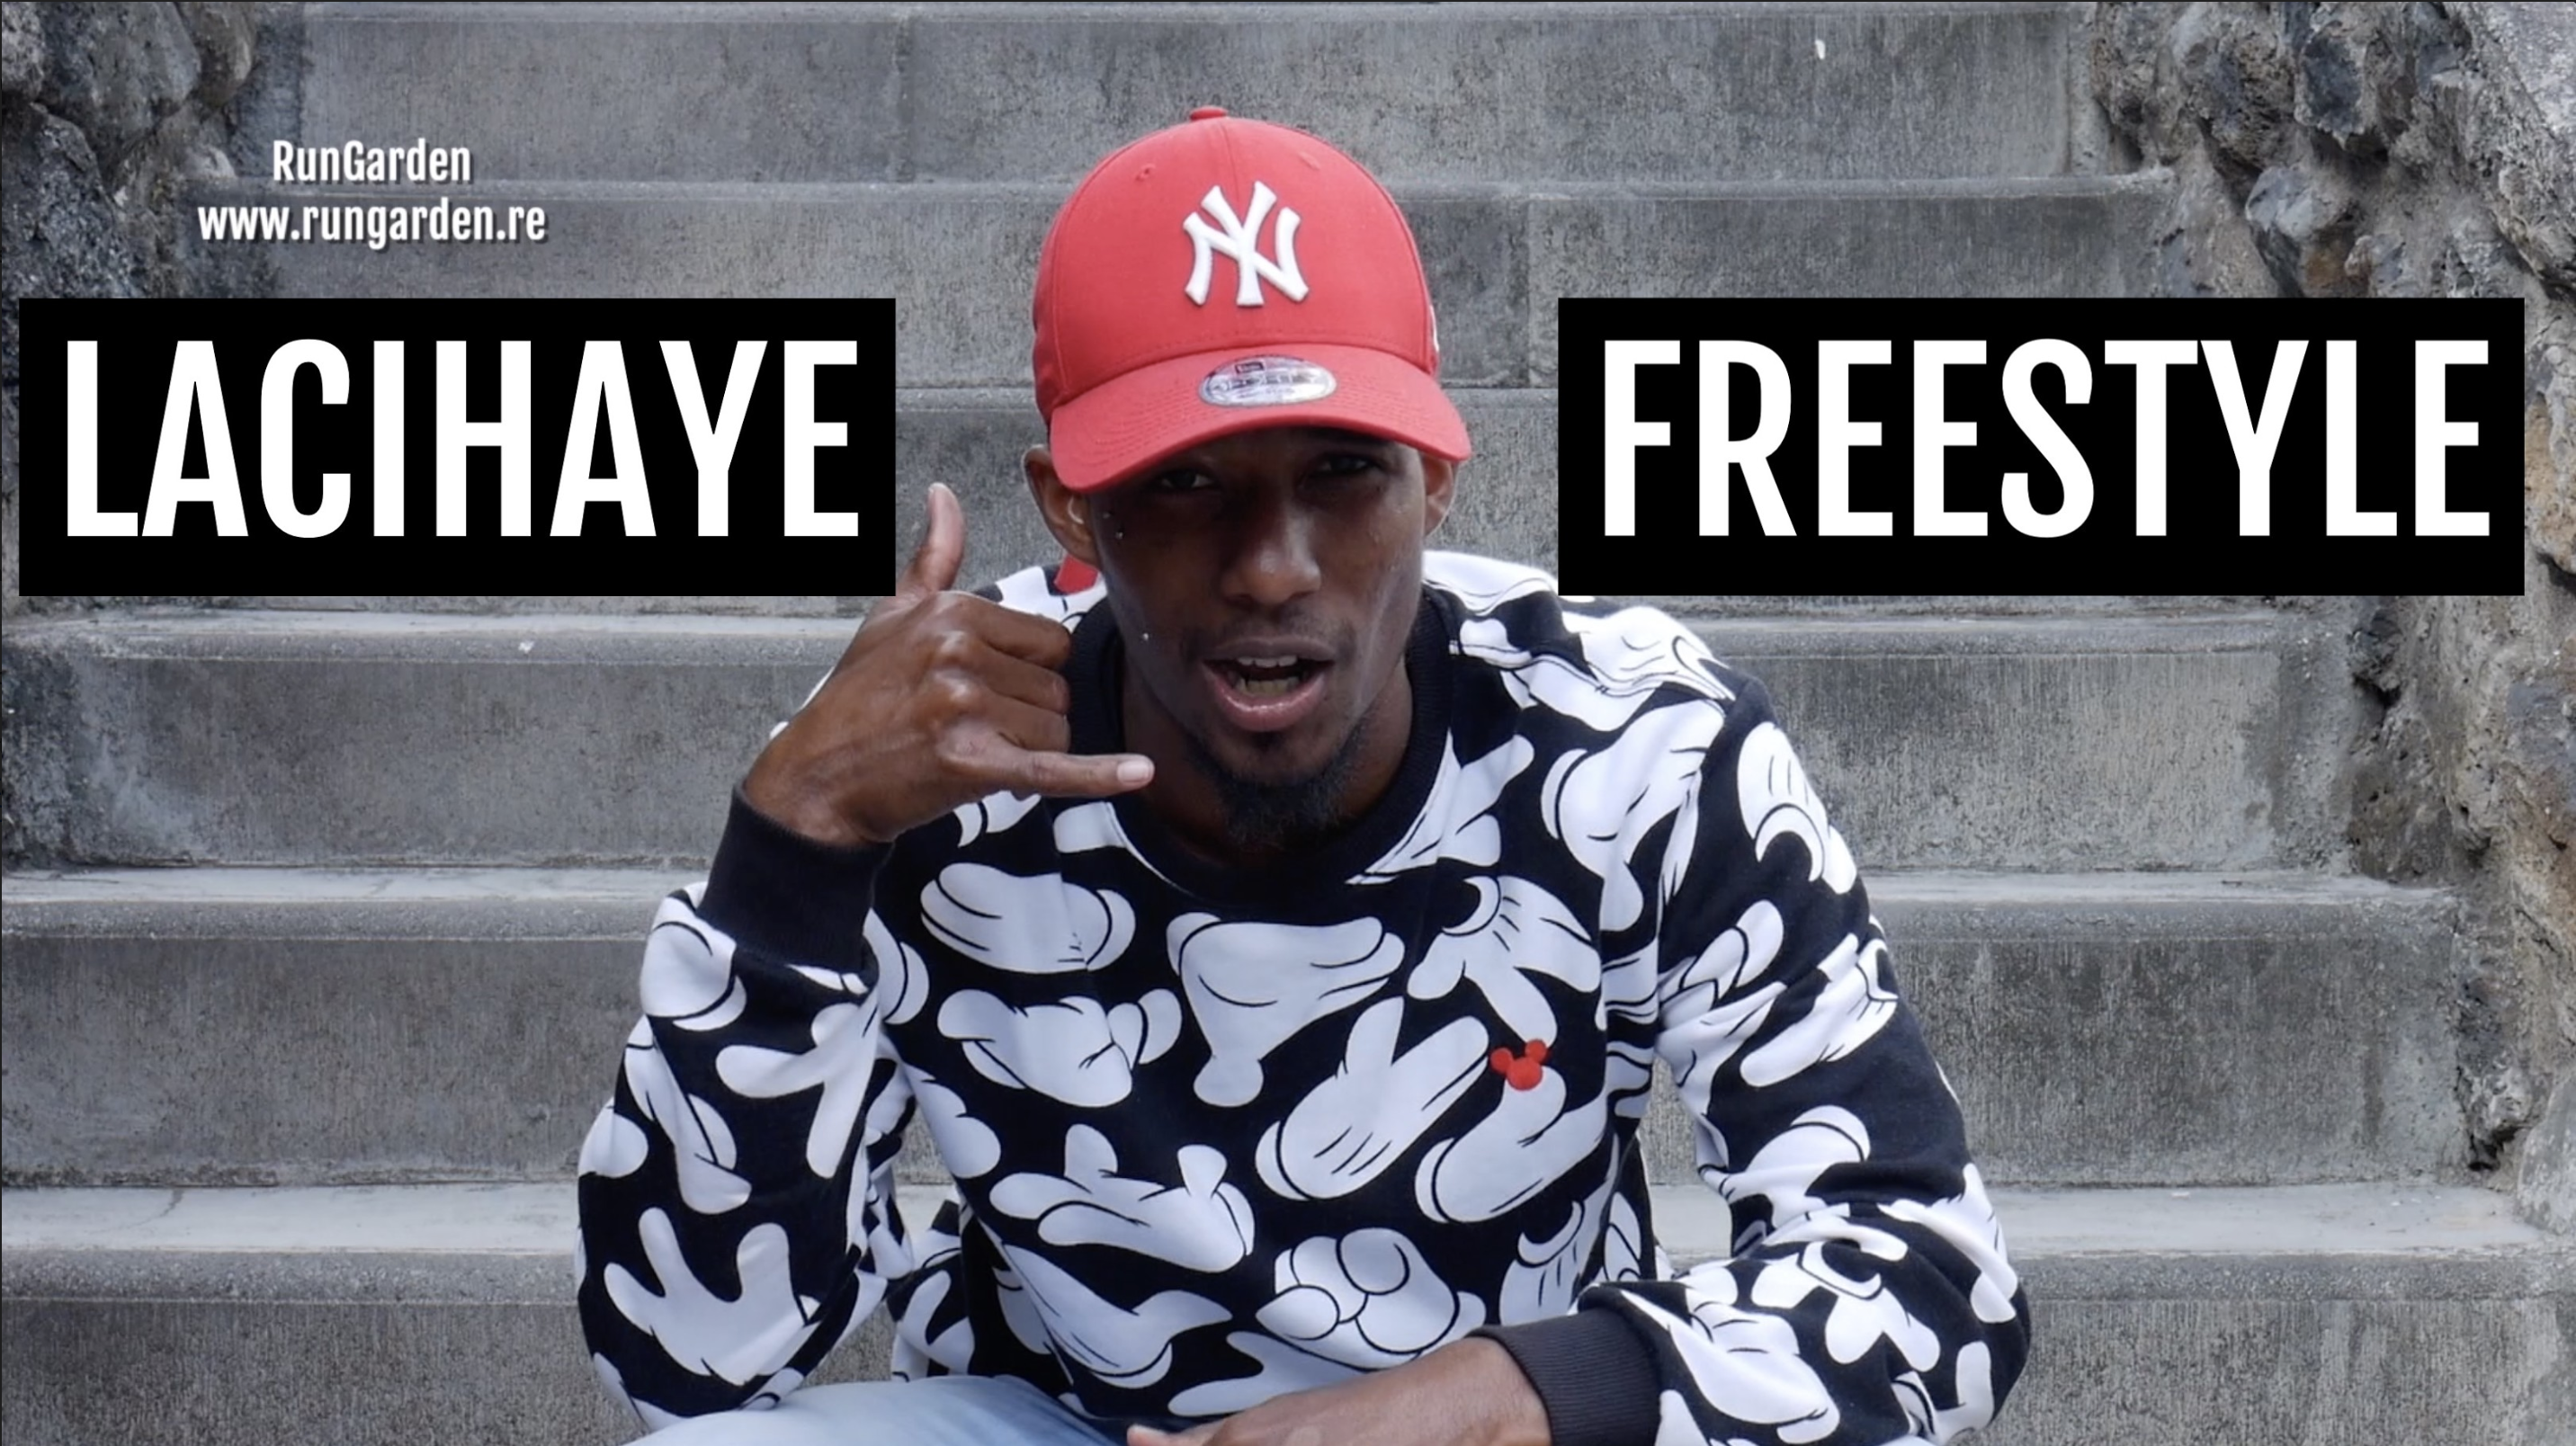 LACIHAYE | Freestyle Exclusif